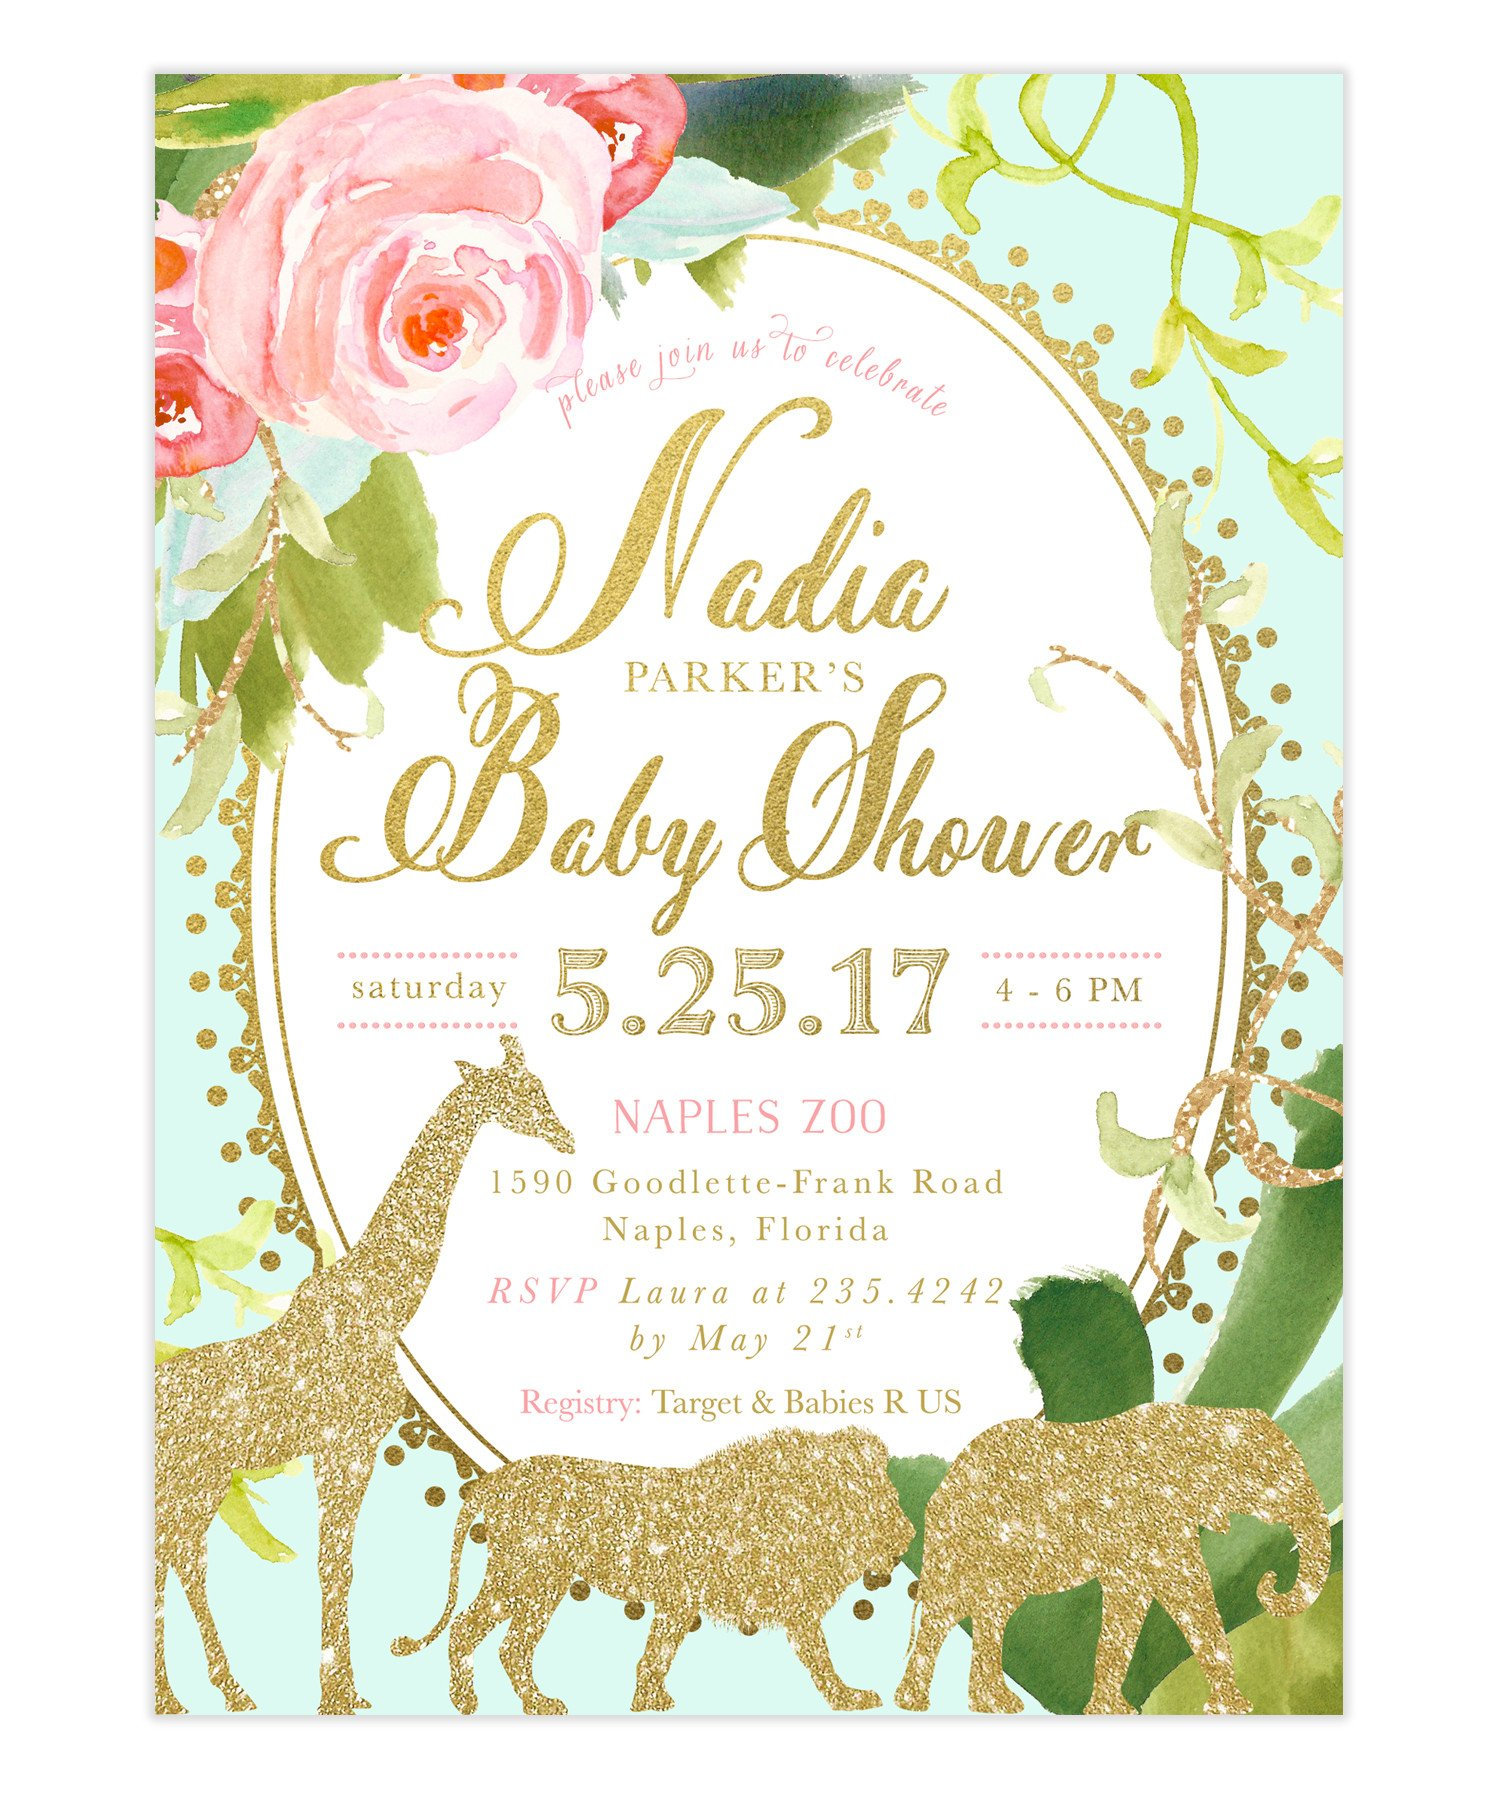 Full Size of Baby Shower:homemade Baby Shower Decorations Baby Shower Ideas Baby Girl Baby Shower Supplies Baby Girl Party Plates Homemade Baby Shower Decorations Unique Baby Shower Themes Nautical Baby Shower Invitations For Boys Printable Baby Shower Invitations For Girl